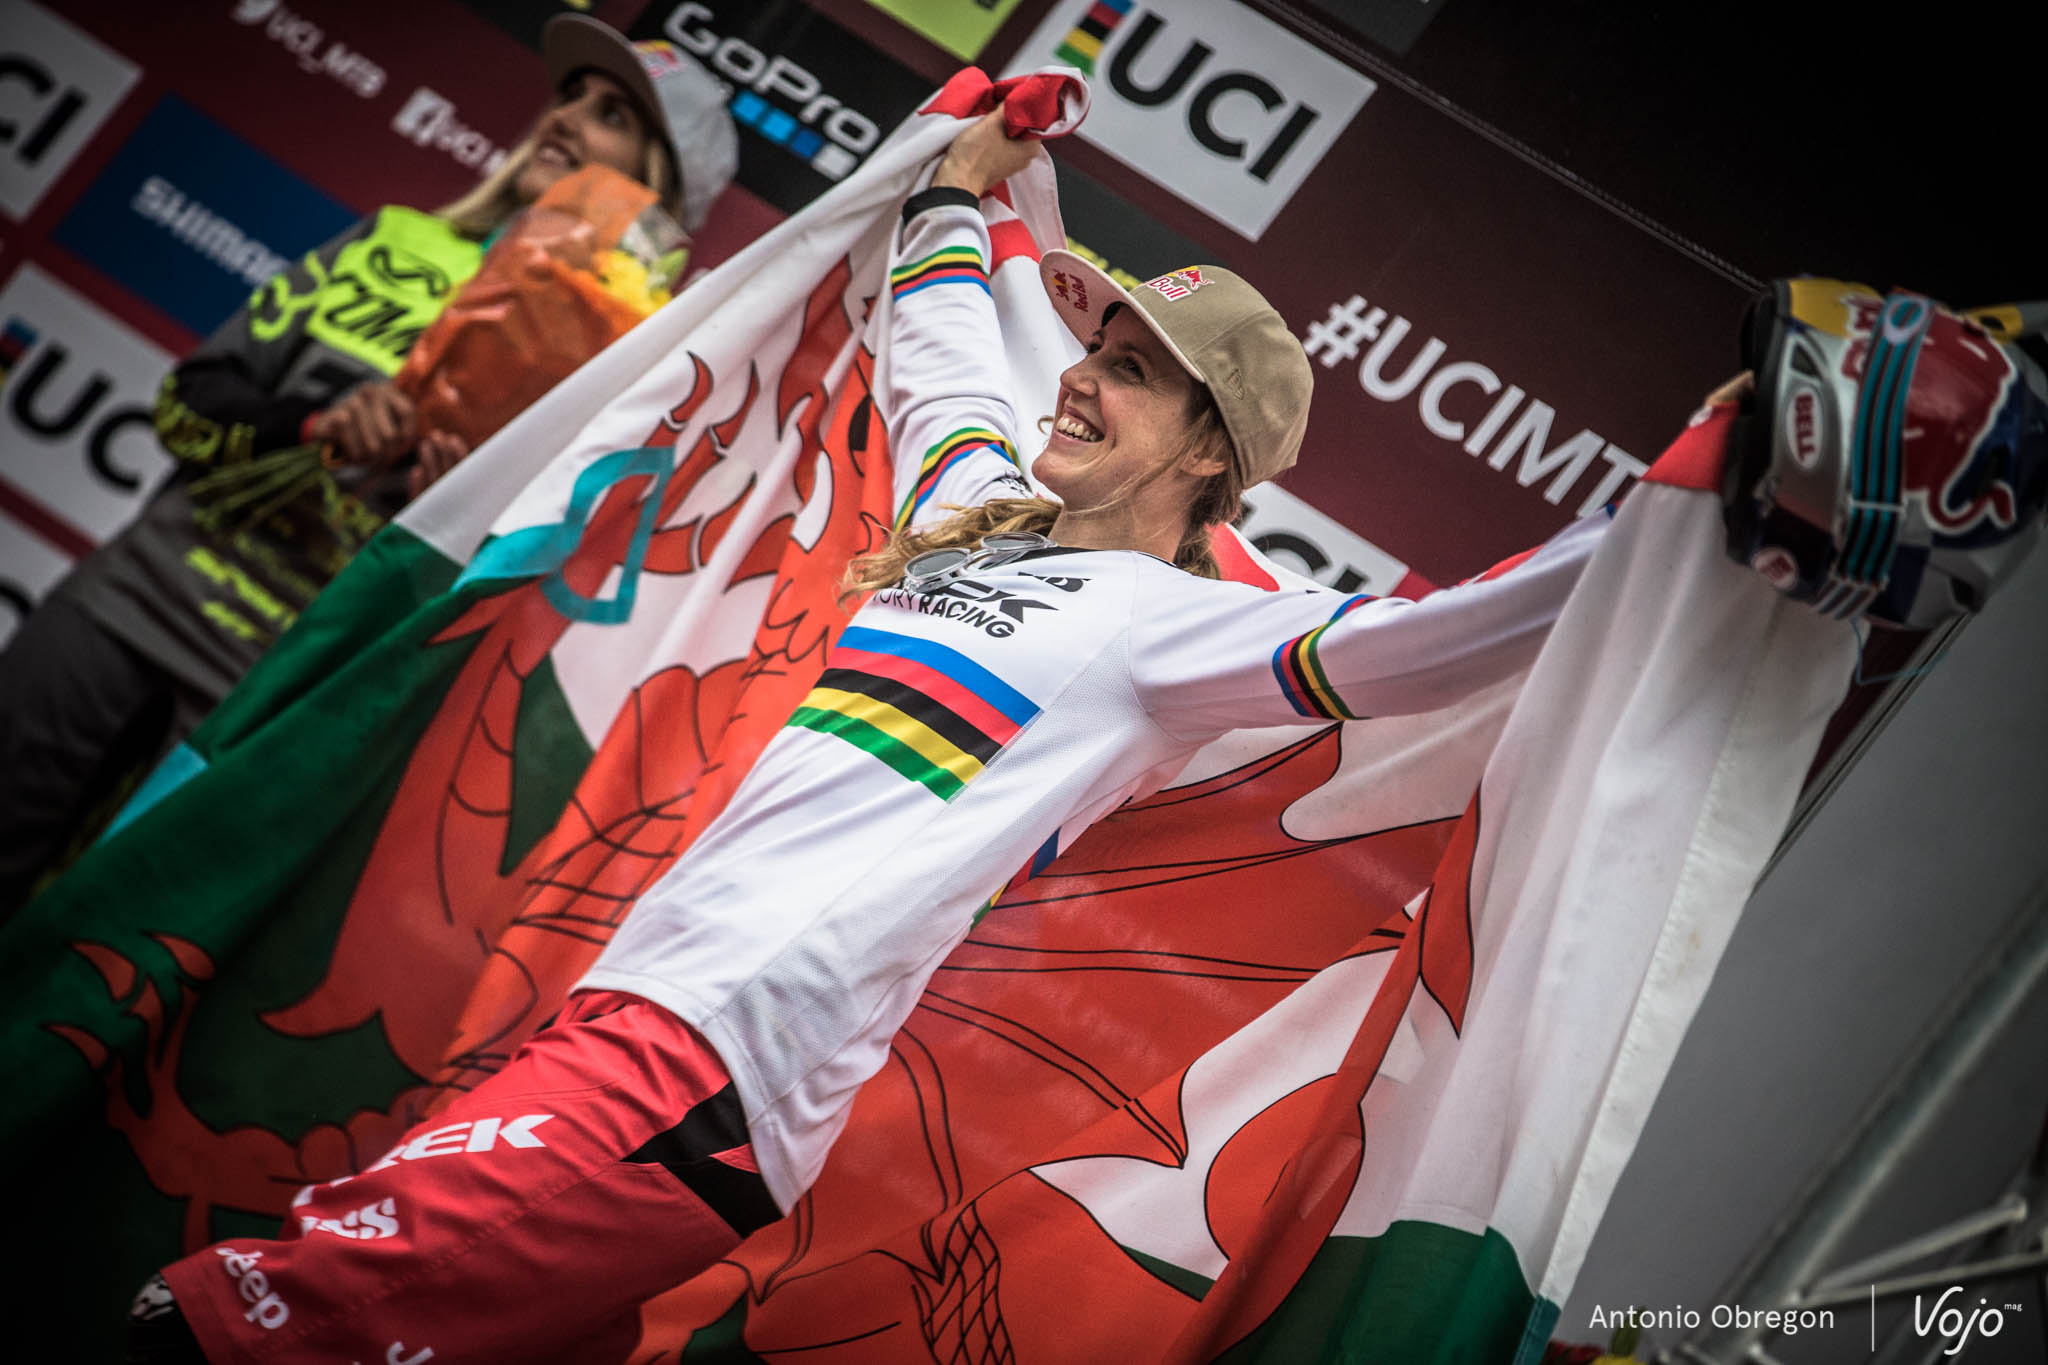 Vallnord_2016_UCI_WorldCup_portfolio_Podium_WC_Race_Women_2_Antonio_Obregon